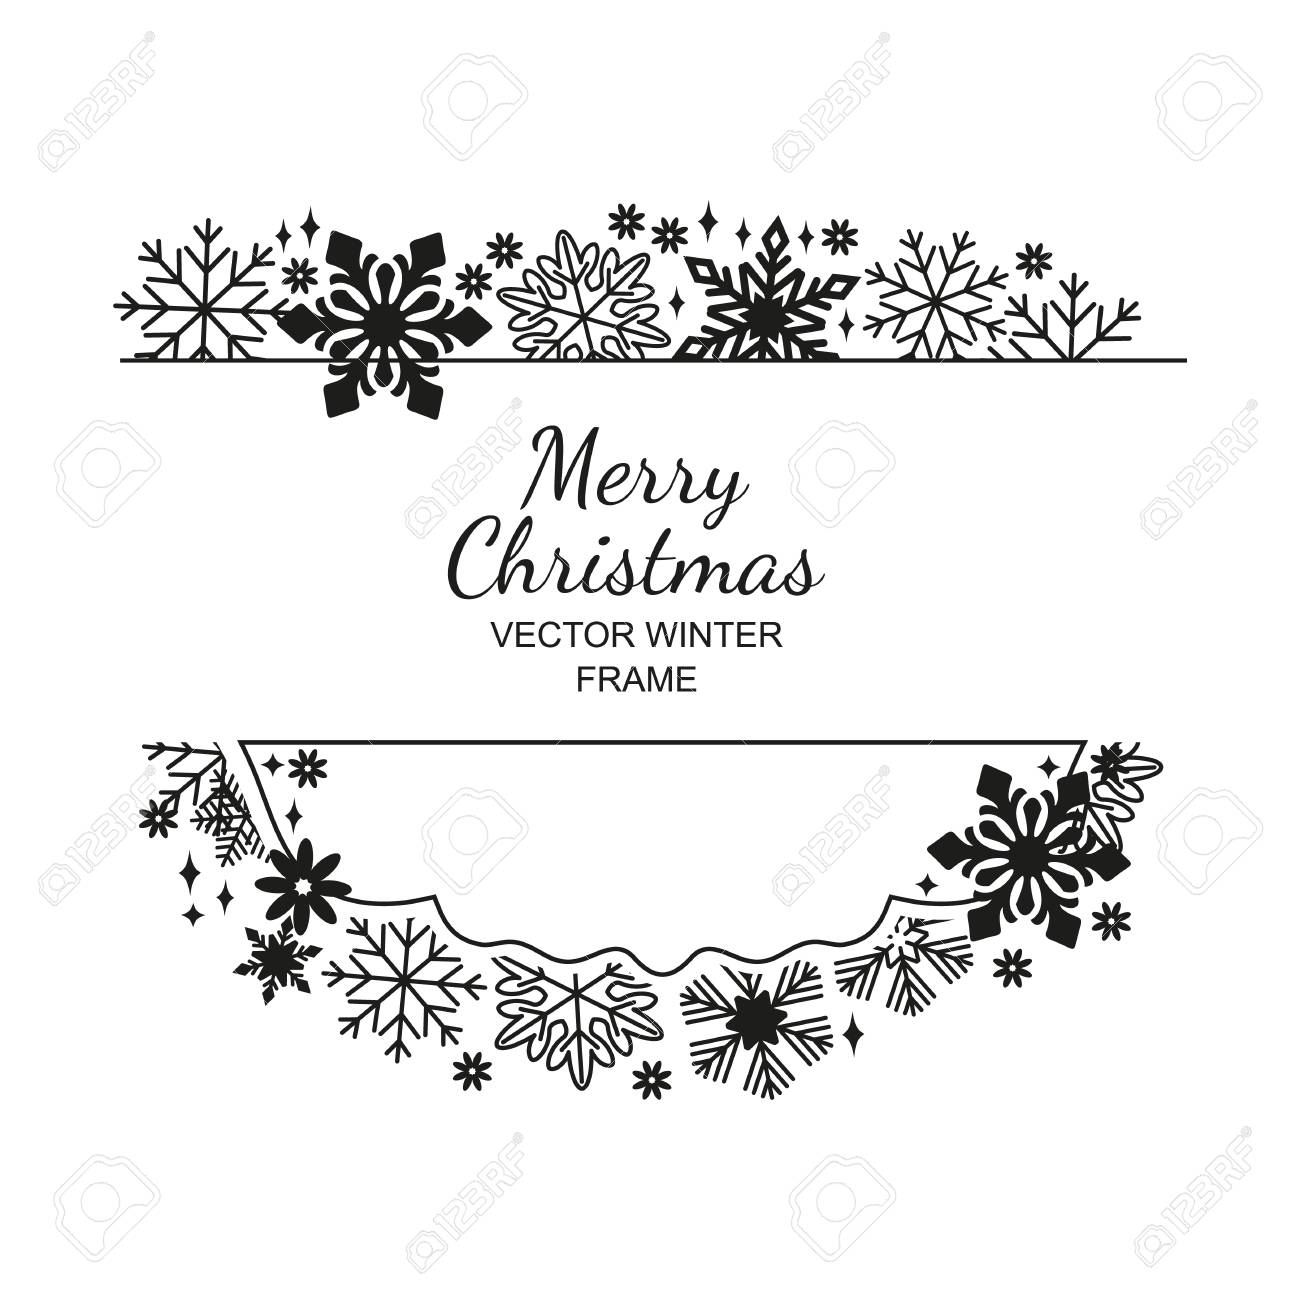 Merry Christmas Images Black And White.Black White Snowflake Frame Decoration On White Background